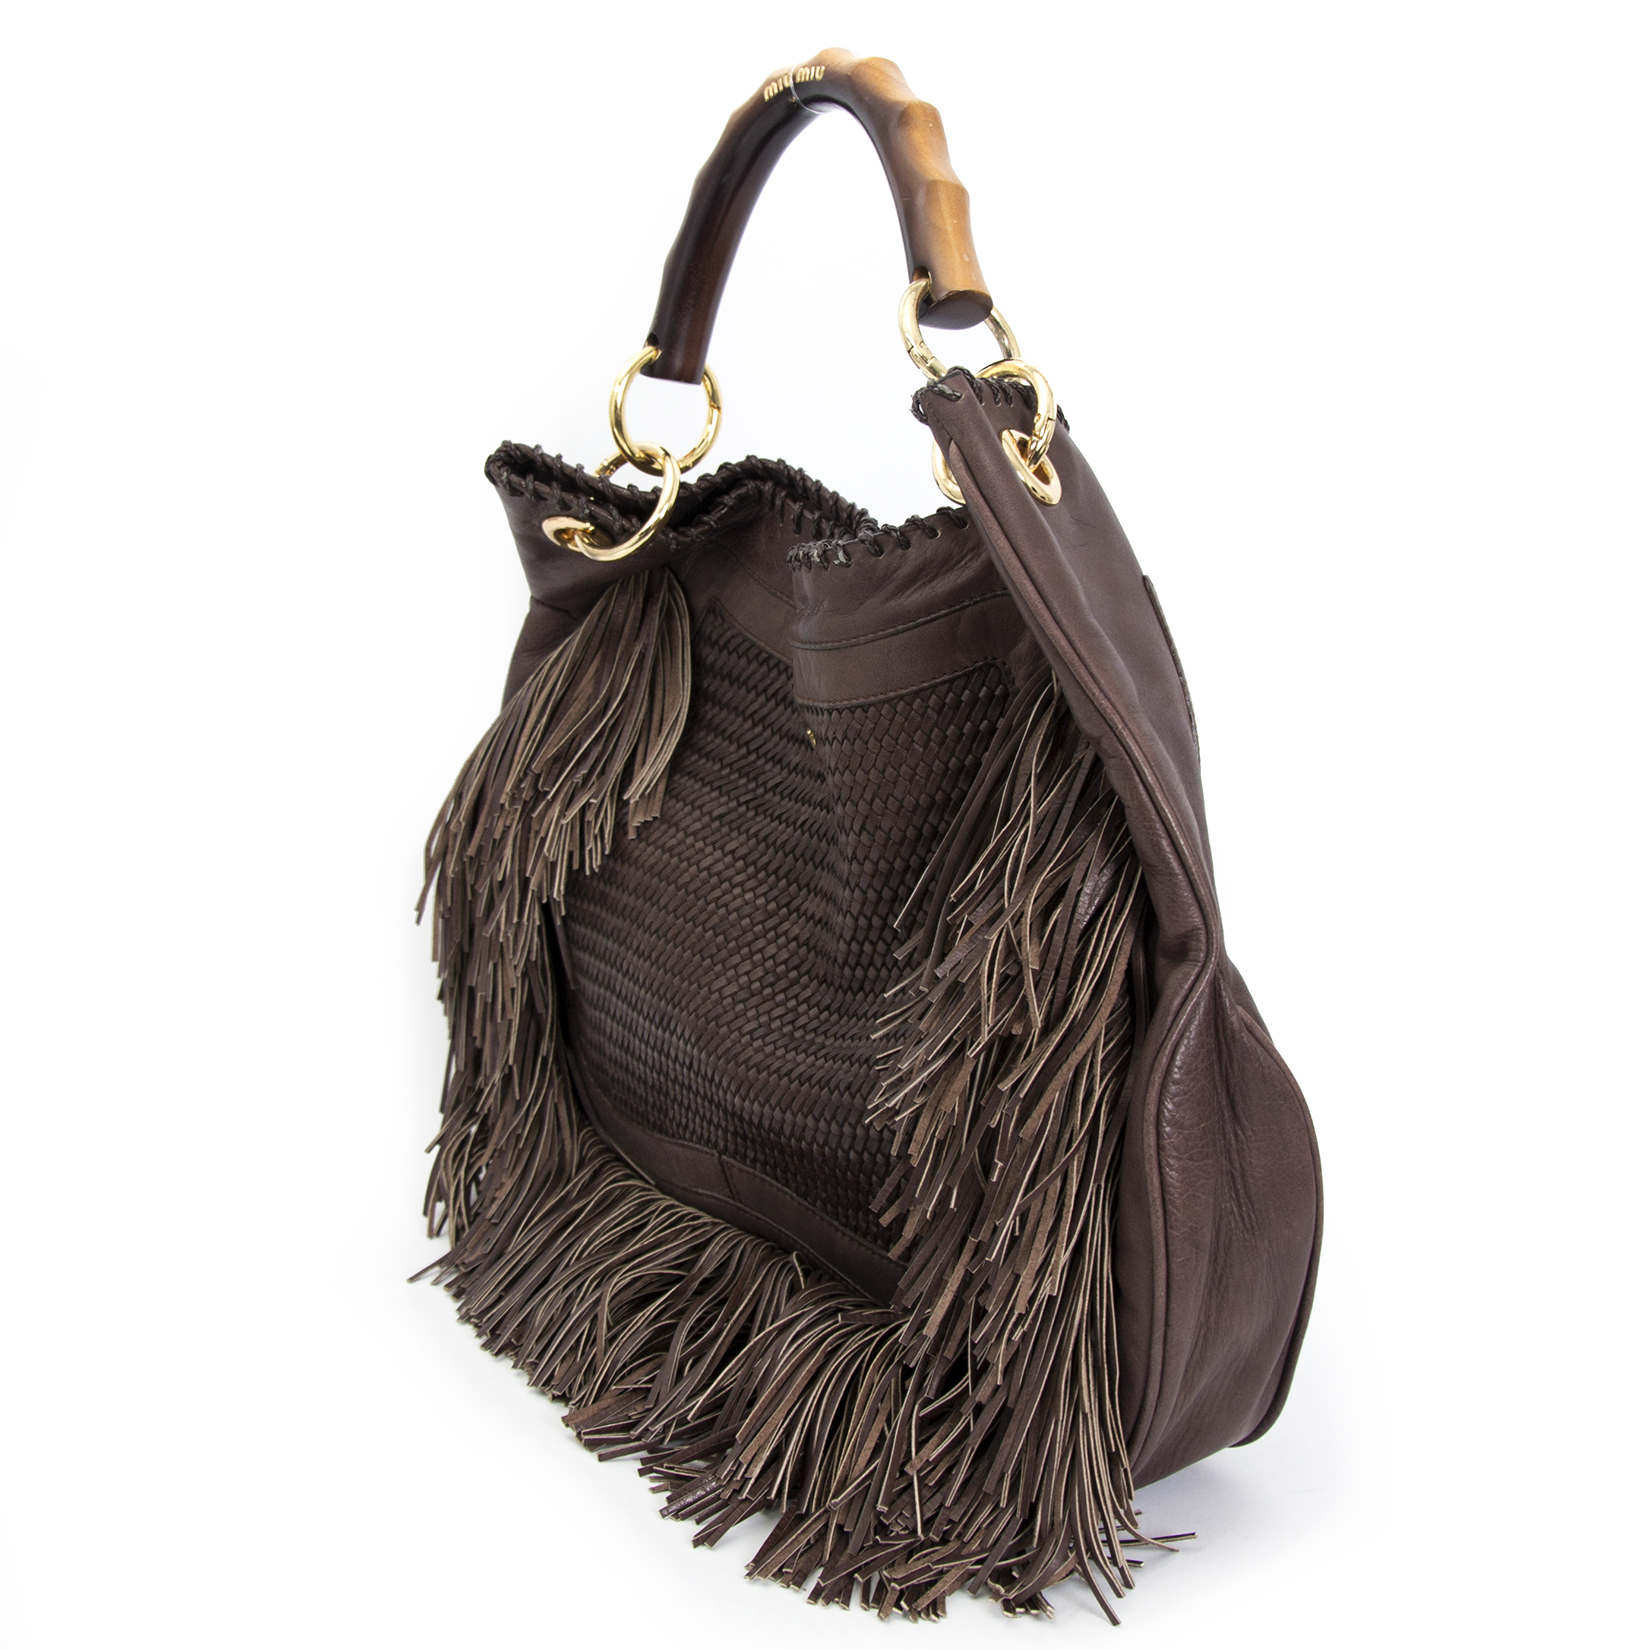 Achetez maintenant en ligne votre secondmain Miu Miu Brown Leather Tassel Handbag chez labellov.com